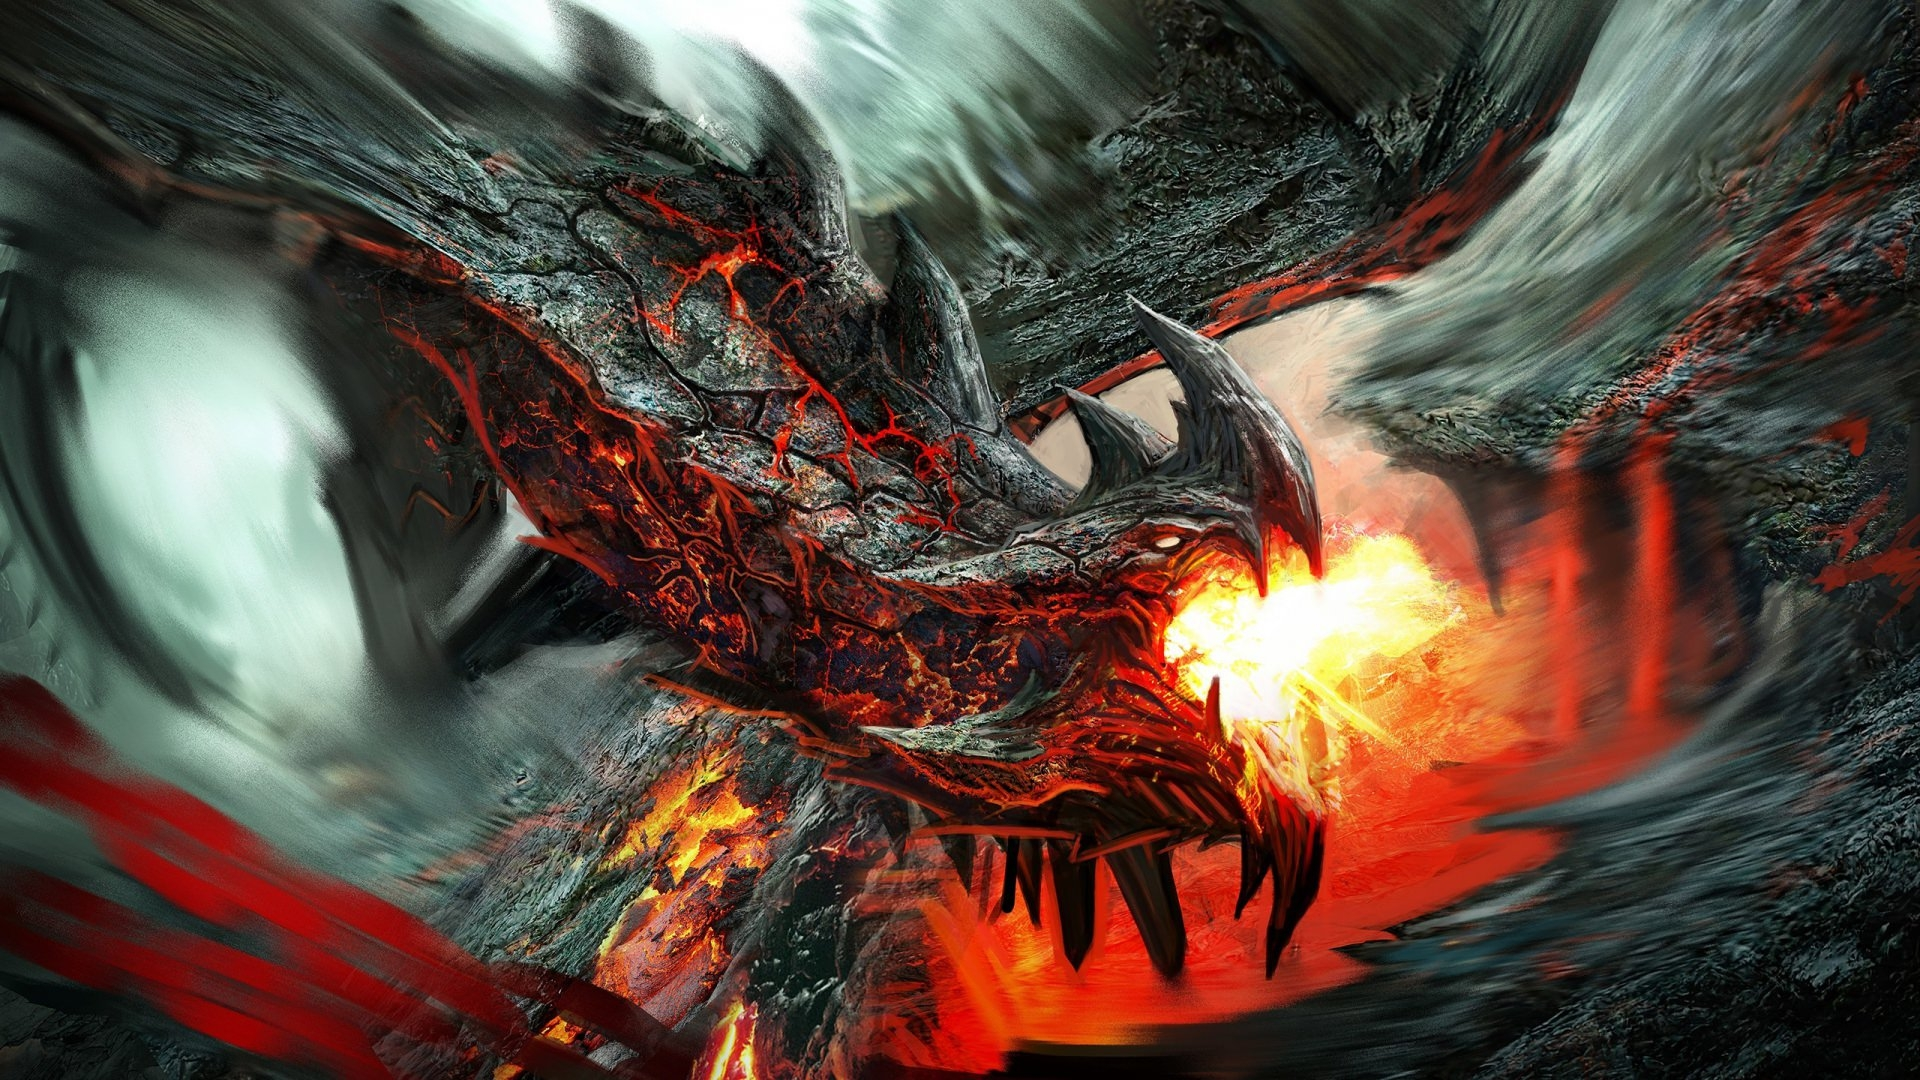 Dragon Breathing Fire Wallpaper